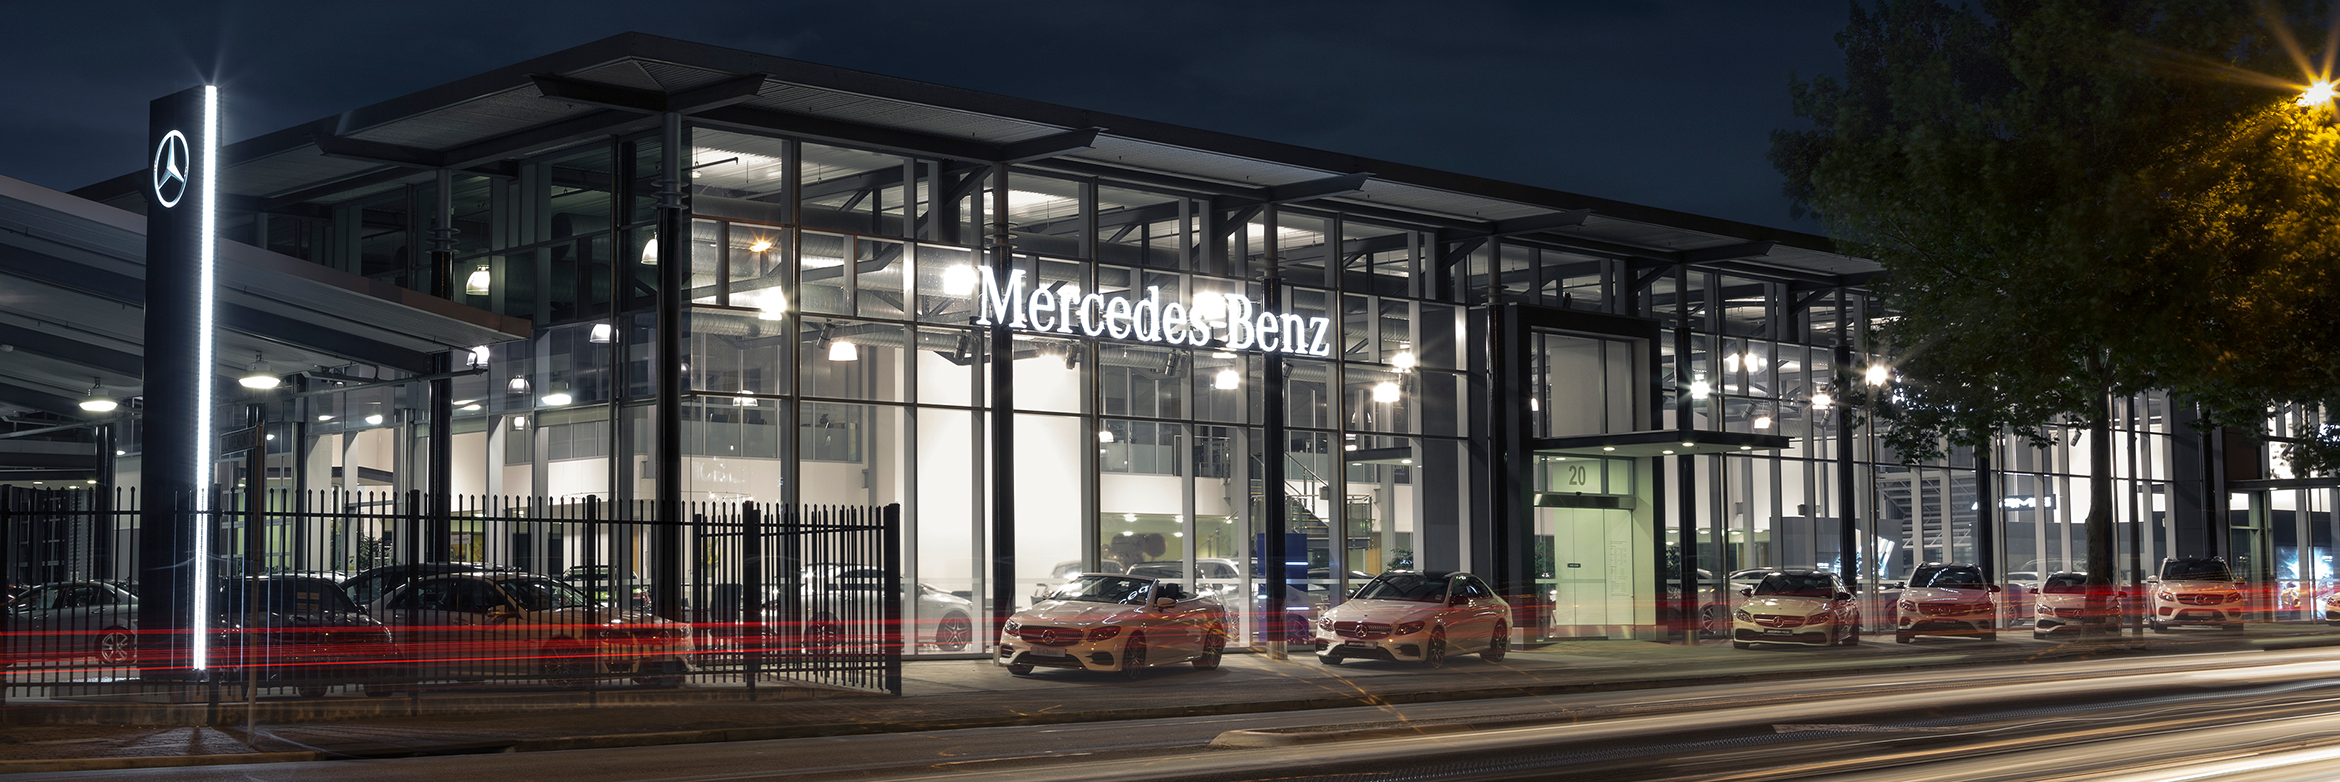 dealers mercedes benz ny motors ca to la welcome downtown los dealer angeles in